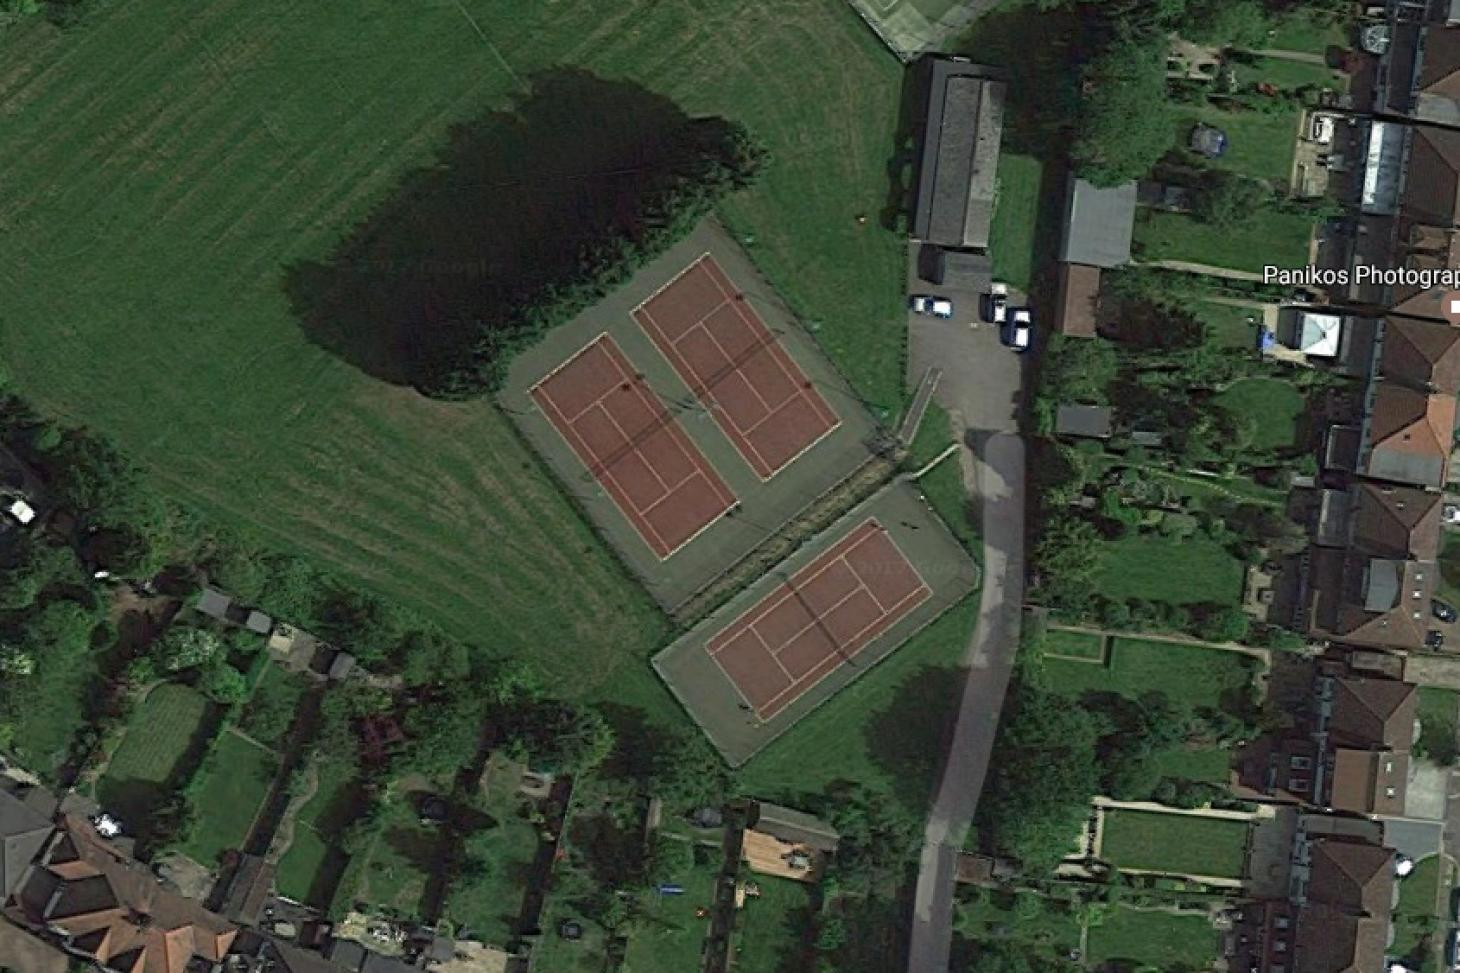 Woodcroft Sports Ground Outdoor | Hard (macadam) tennis court